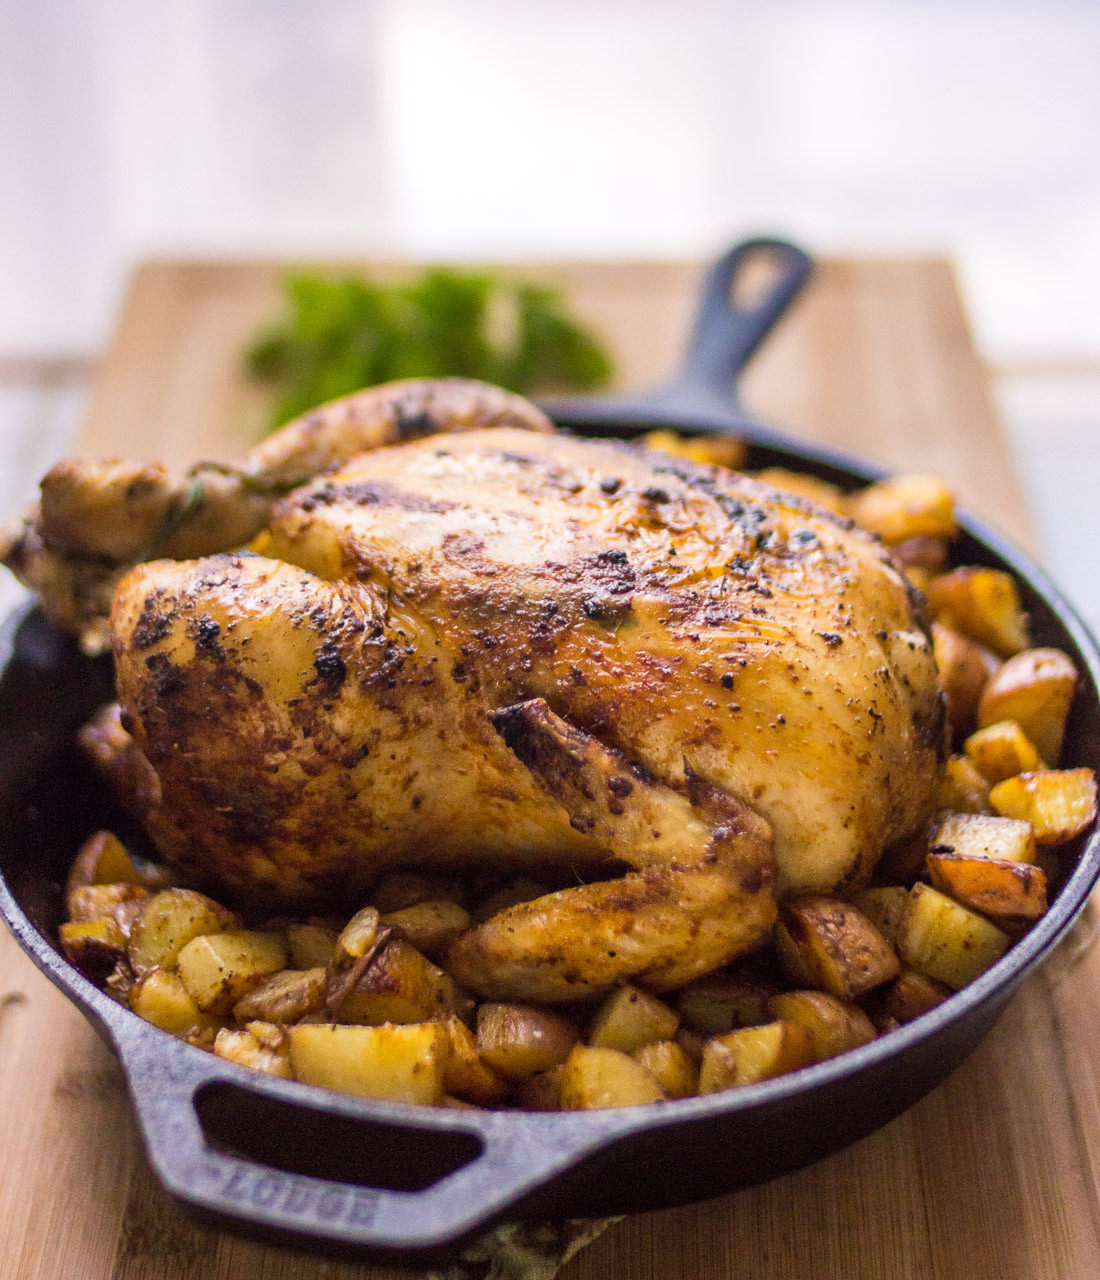 Roasted Chicken And Potatoes  50 High Protein Chicken Recipes That Are Healthy And